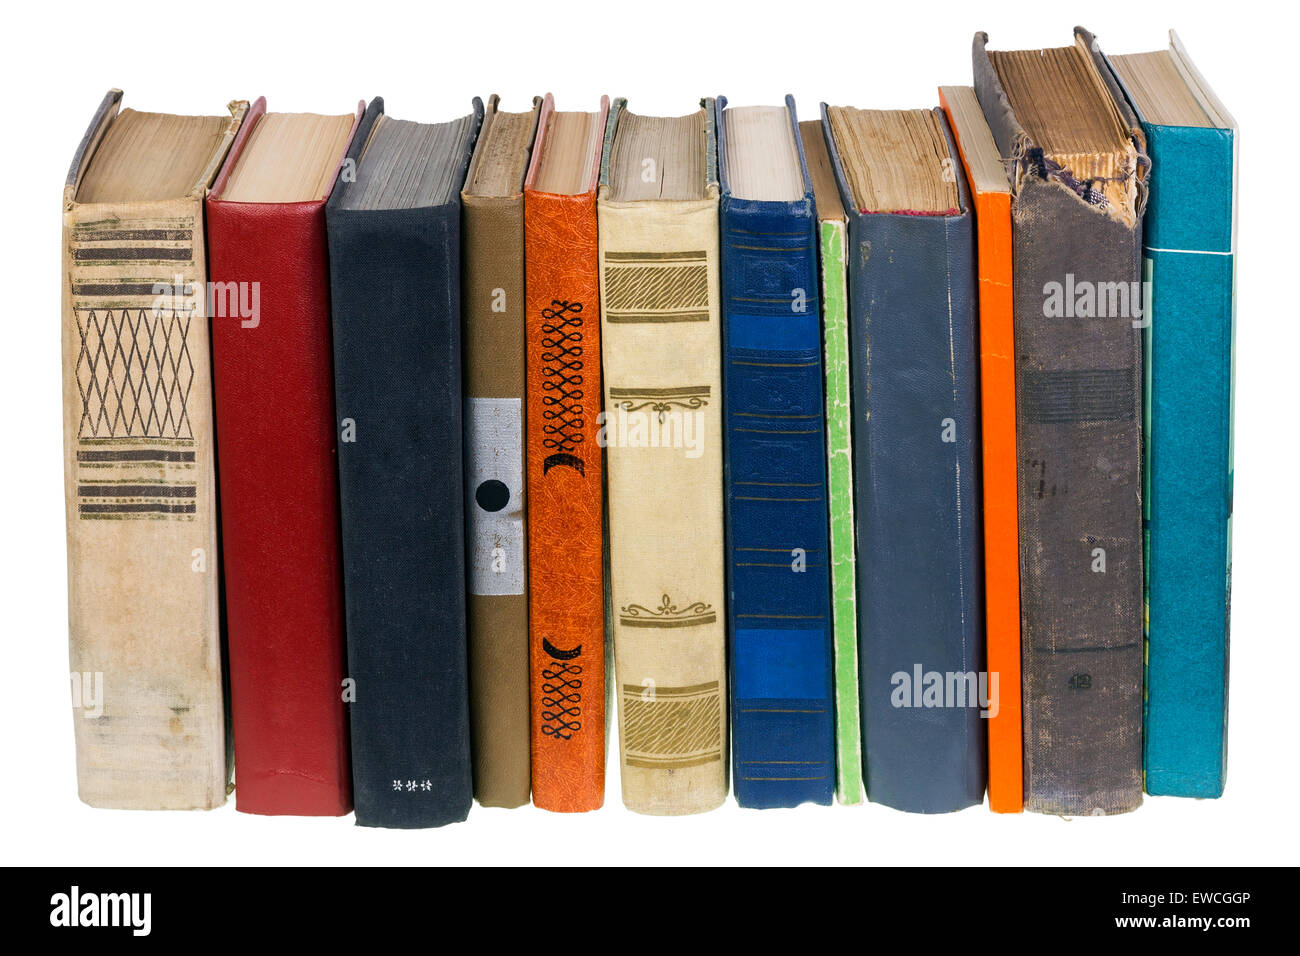 The ancient old decrepit forgotten books concept. Isolated on white - Stock Image